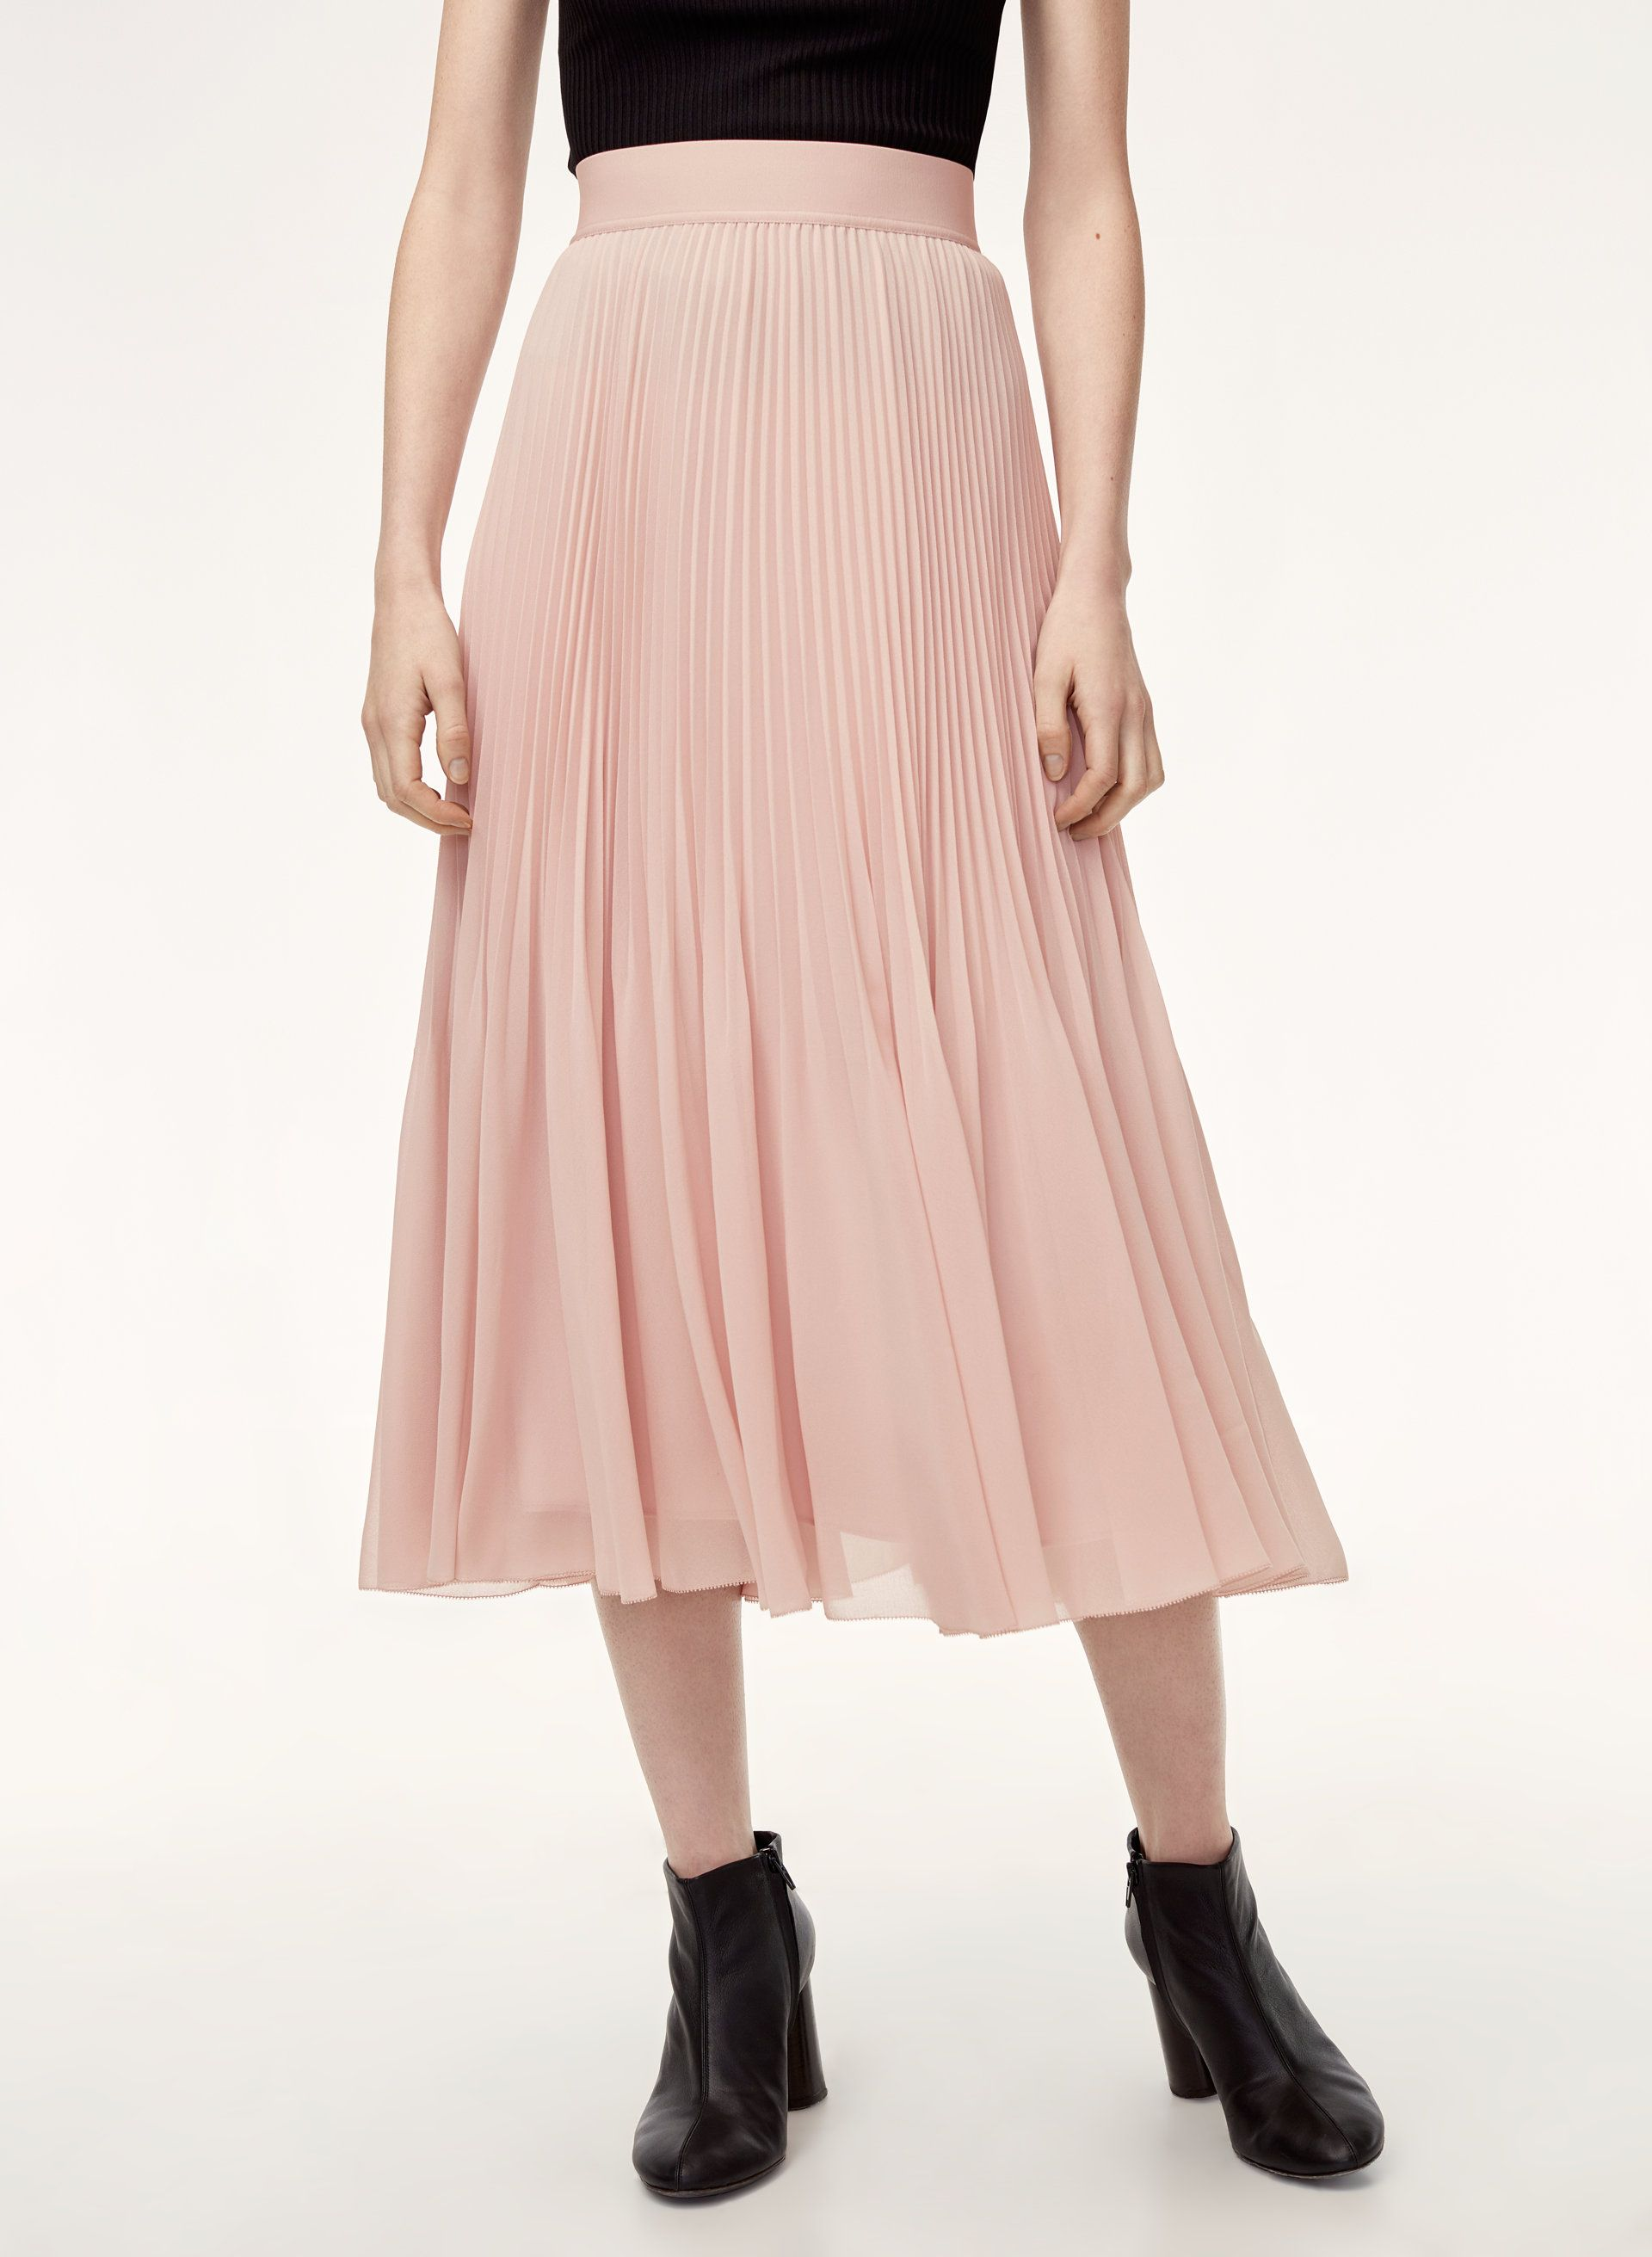 8813d85964ec Terre skirt | Style // Wish List | Skirts, Fashion, Pleated skirt